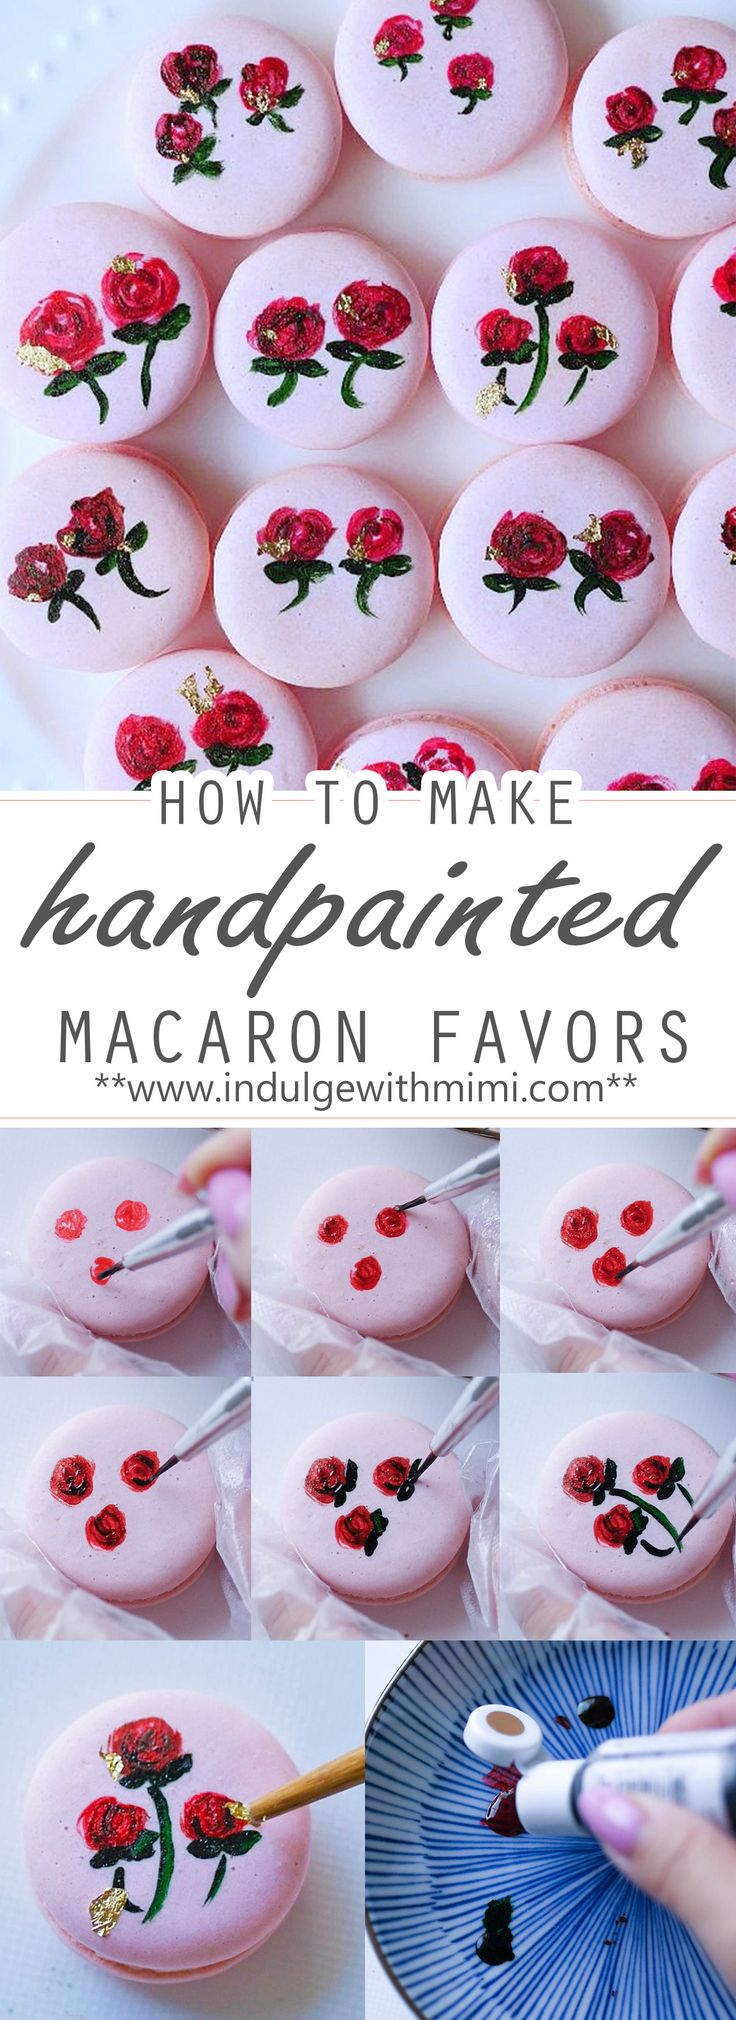 Tutorial on How to Make Hand Painted Floral Macaron Favors for your wedding or party. Impress your guests with these fancy treats that will look stunning on any table setting.